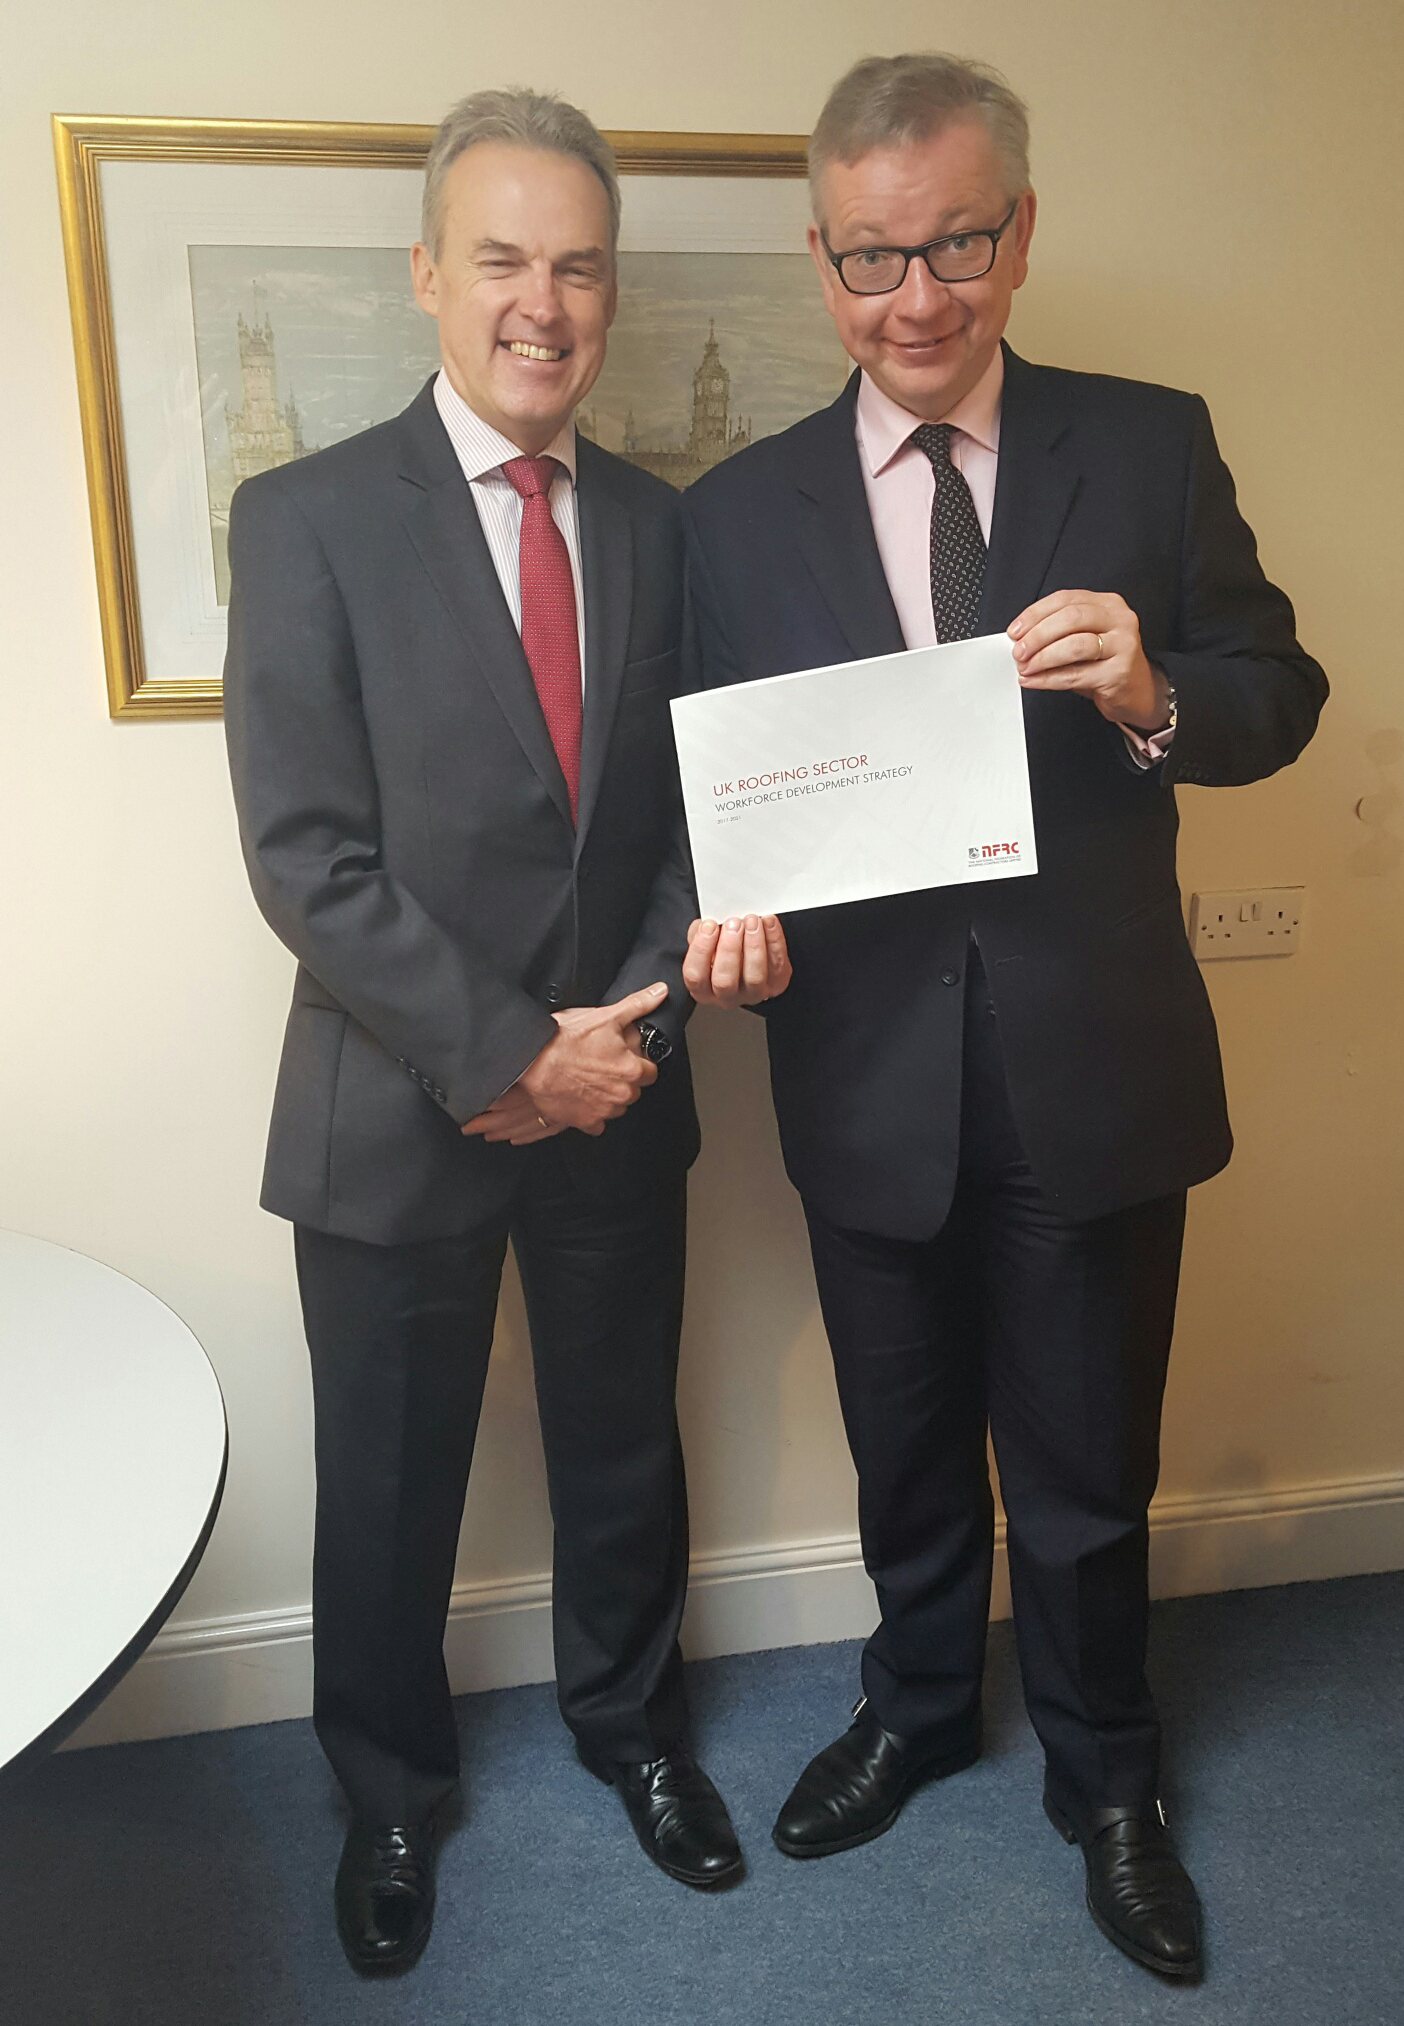 NFRC Chief Executive James Talman presenting workforce development strategy report to Rt Hon Michael Gove